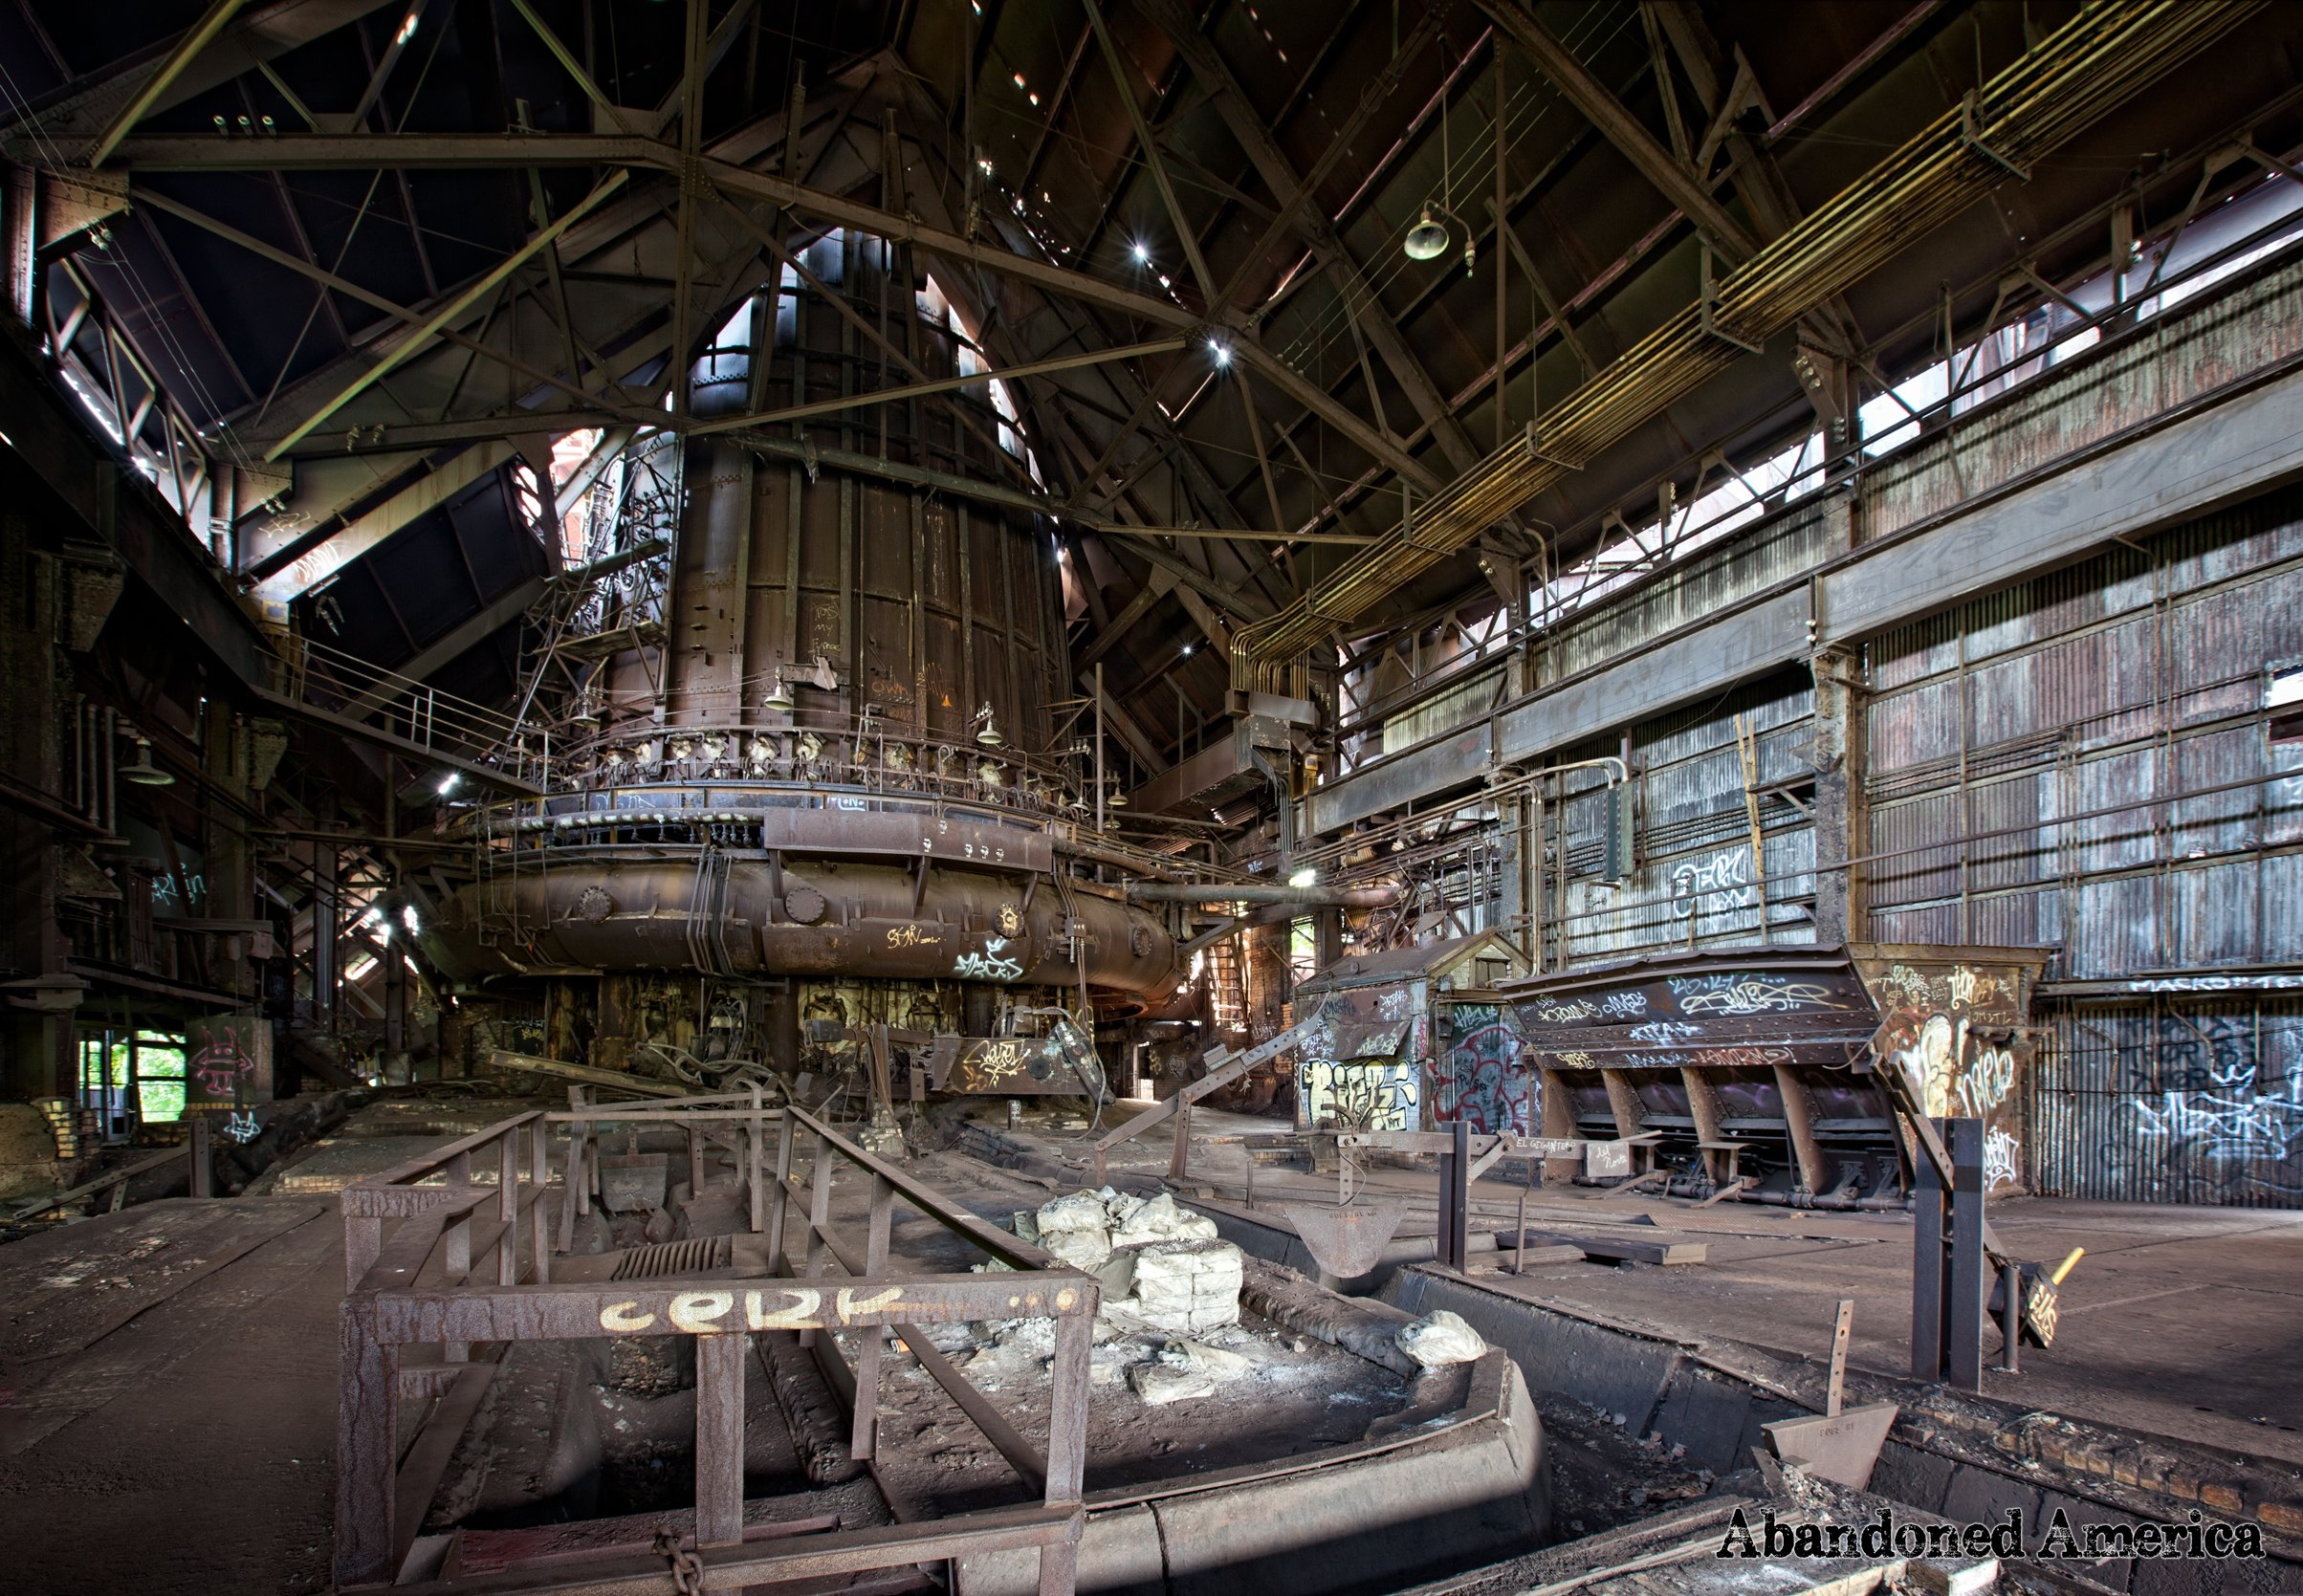 Abandoned America The Carrie Furnaces Travelers Roundtable